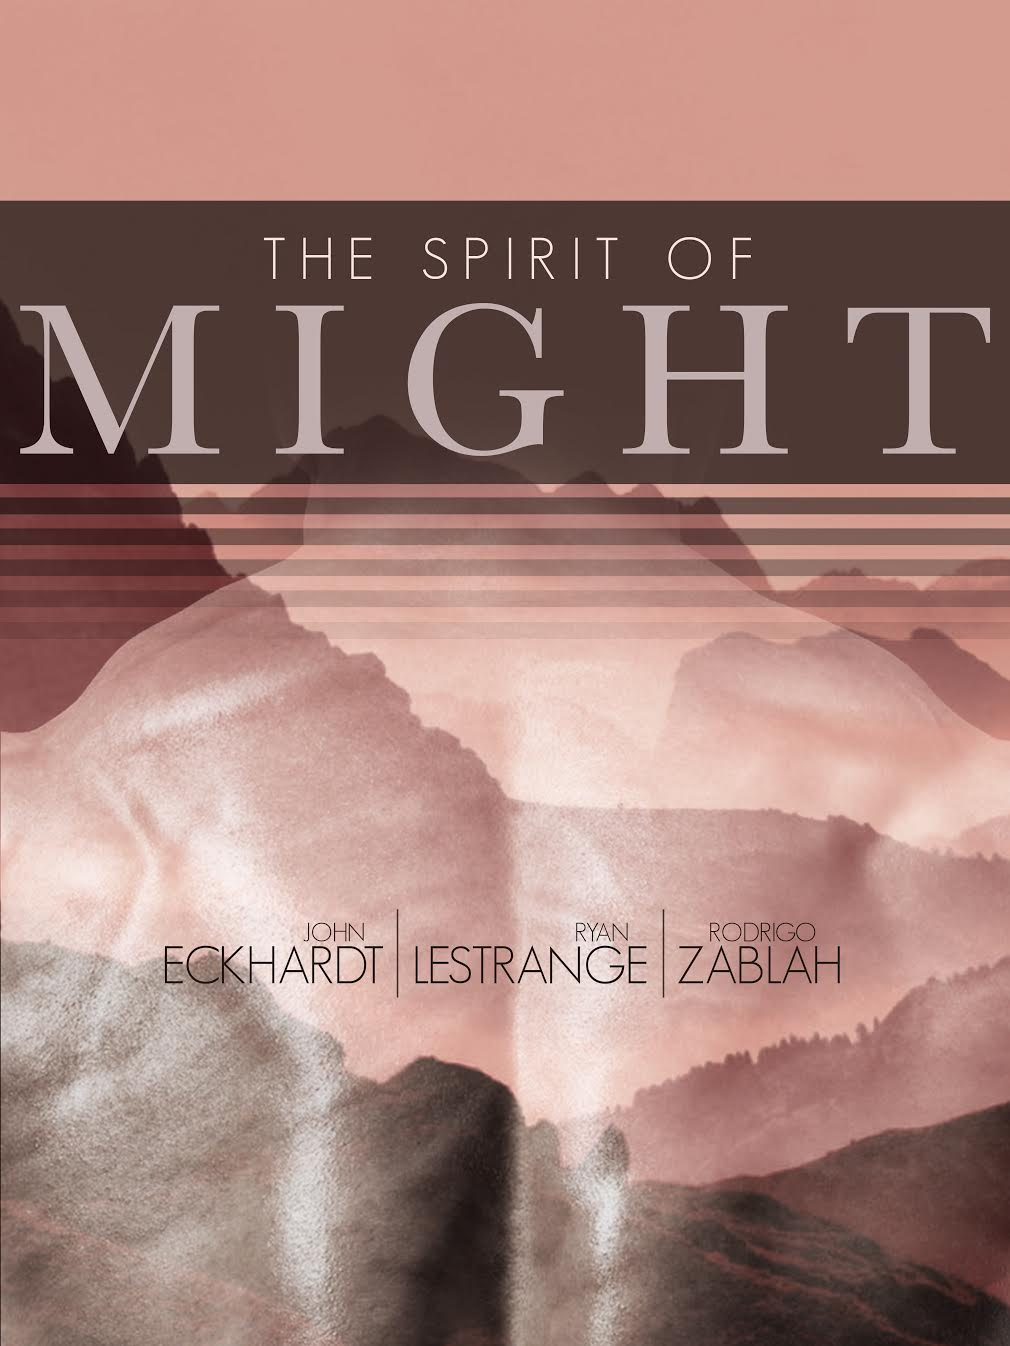 The Spirit Of Might